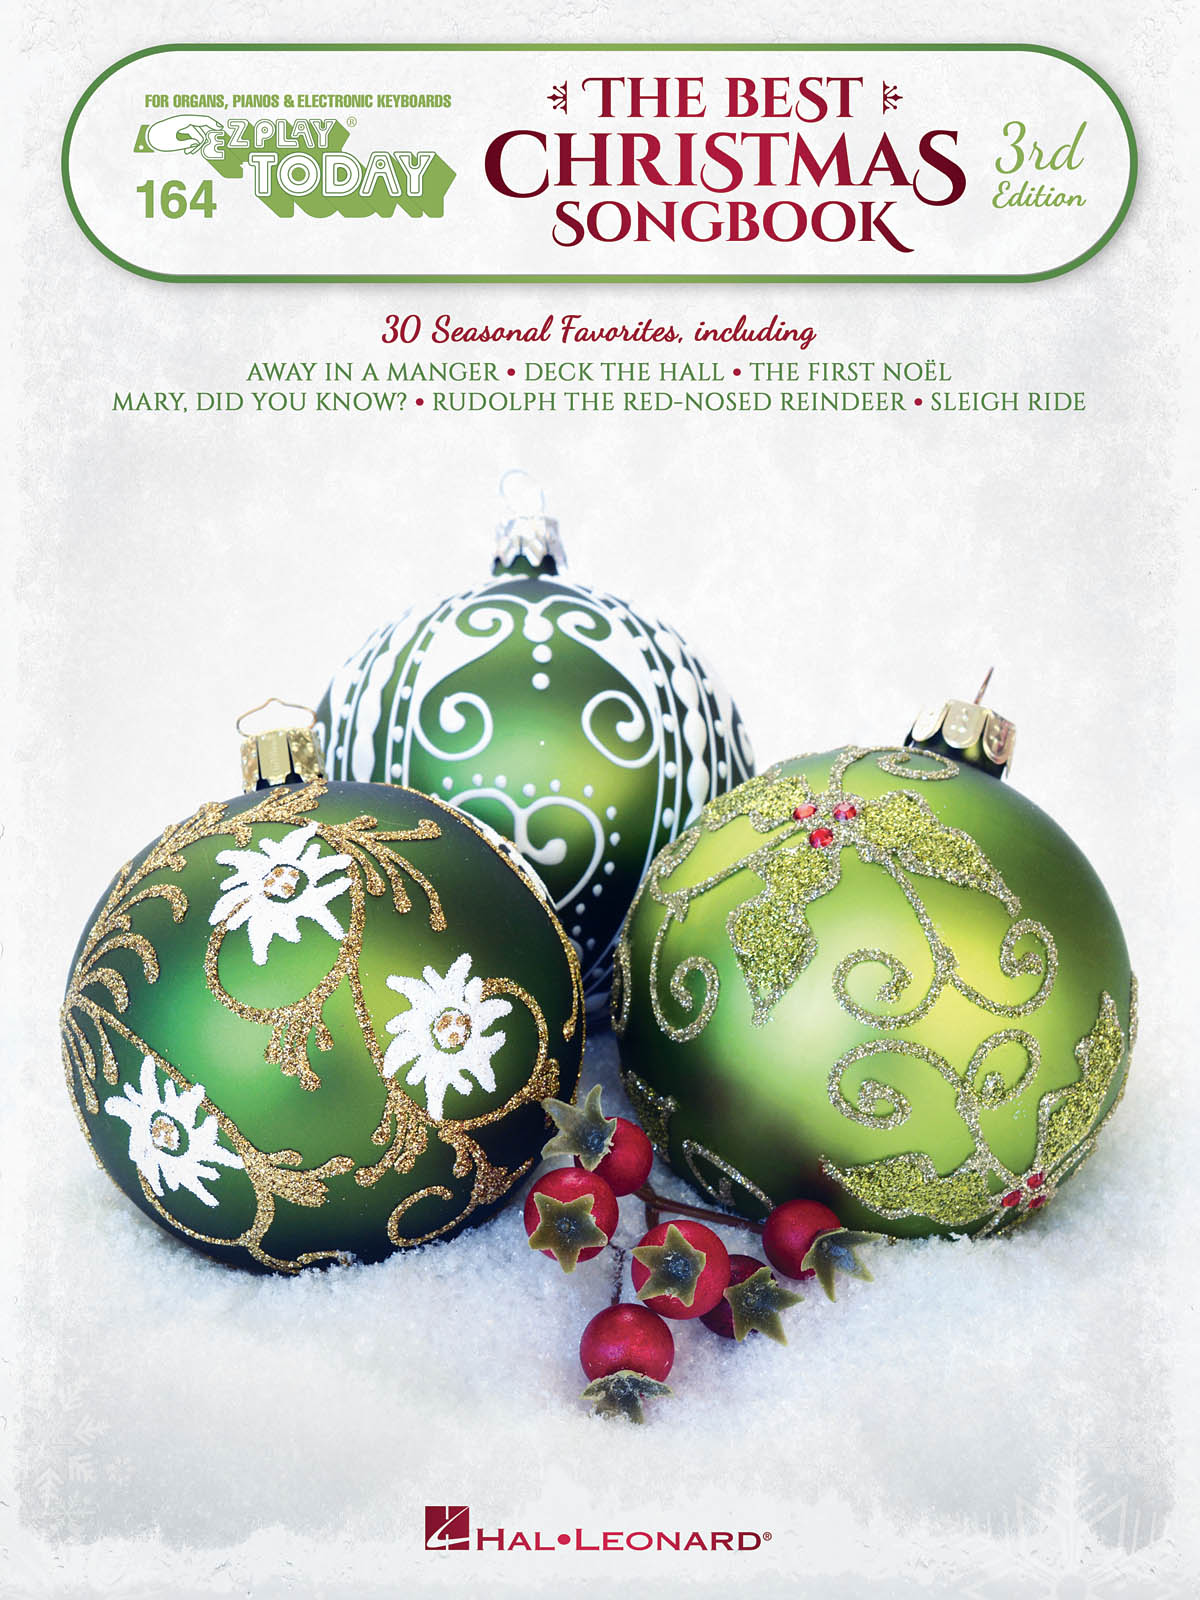 The Best Christmas Songbook - 3Rd Edition